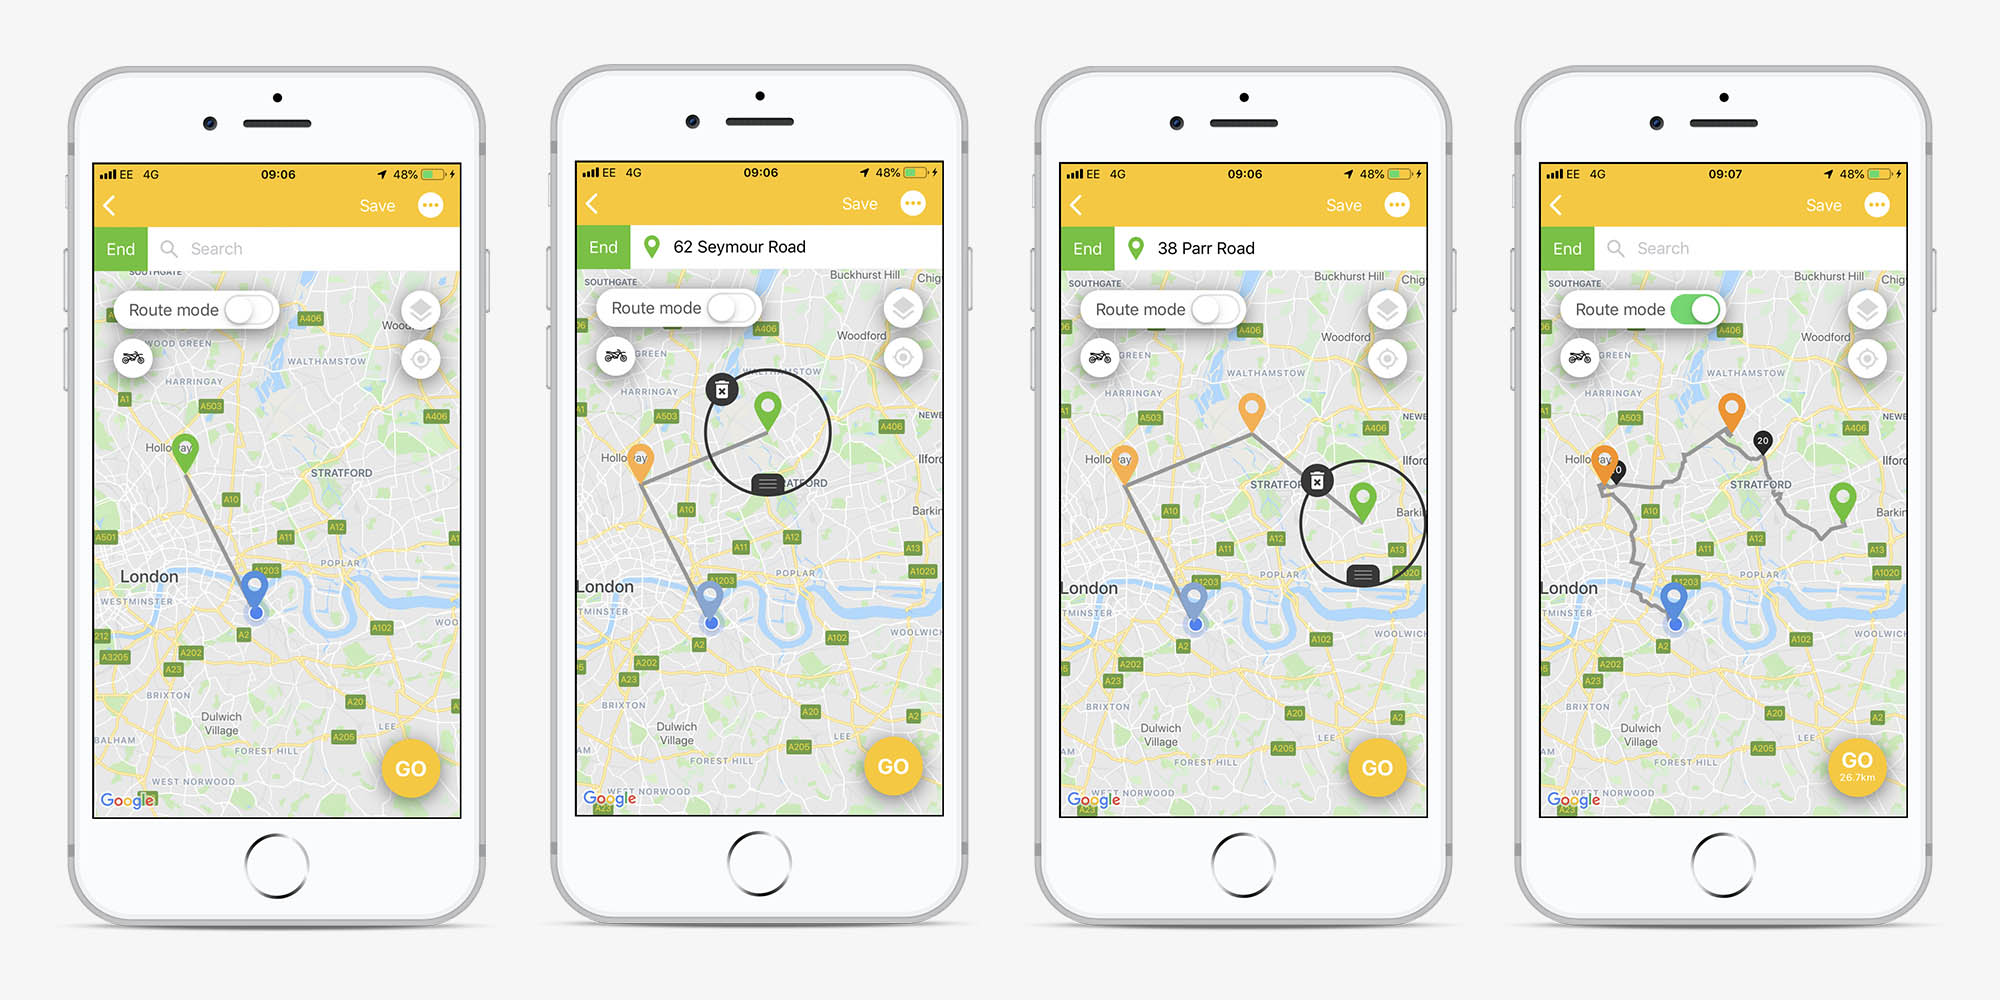 Screens from the Beeline app showing waypoints being added one by one by green pointers